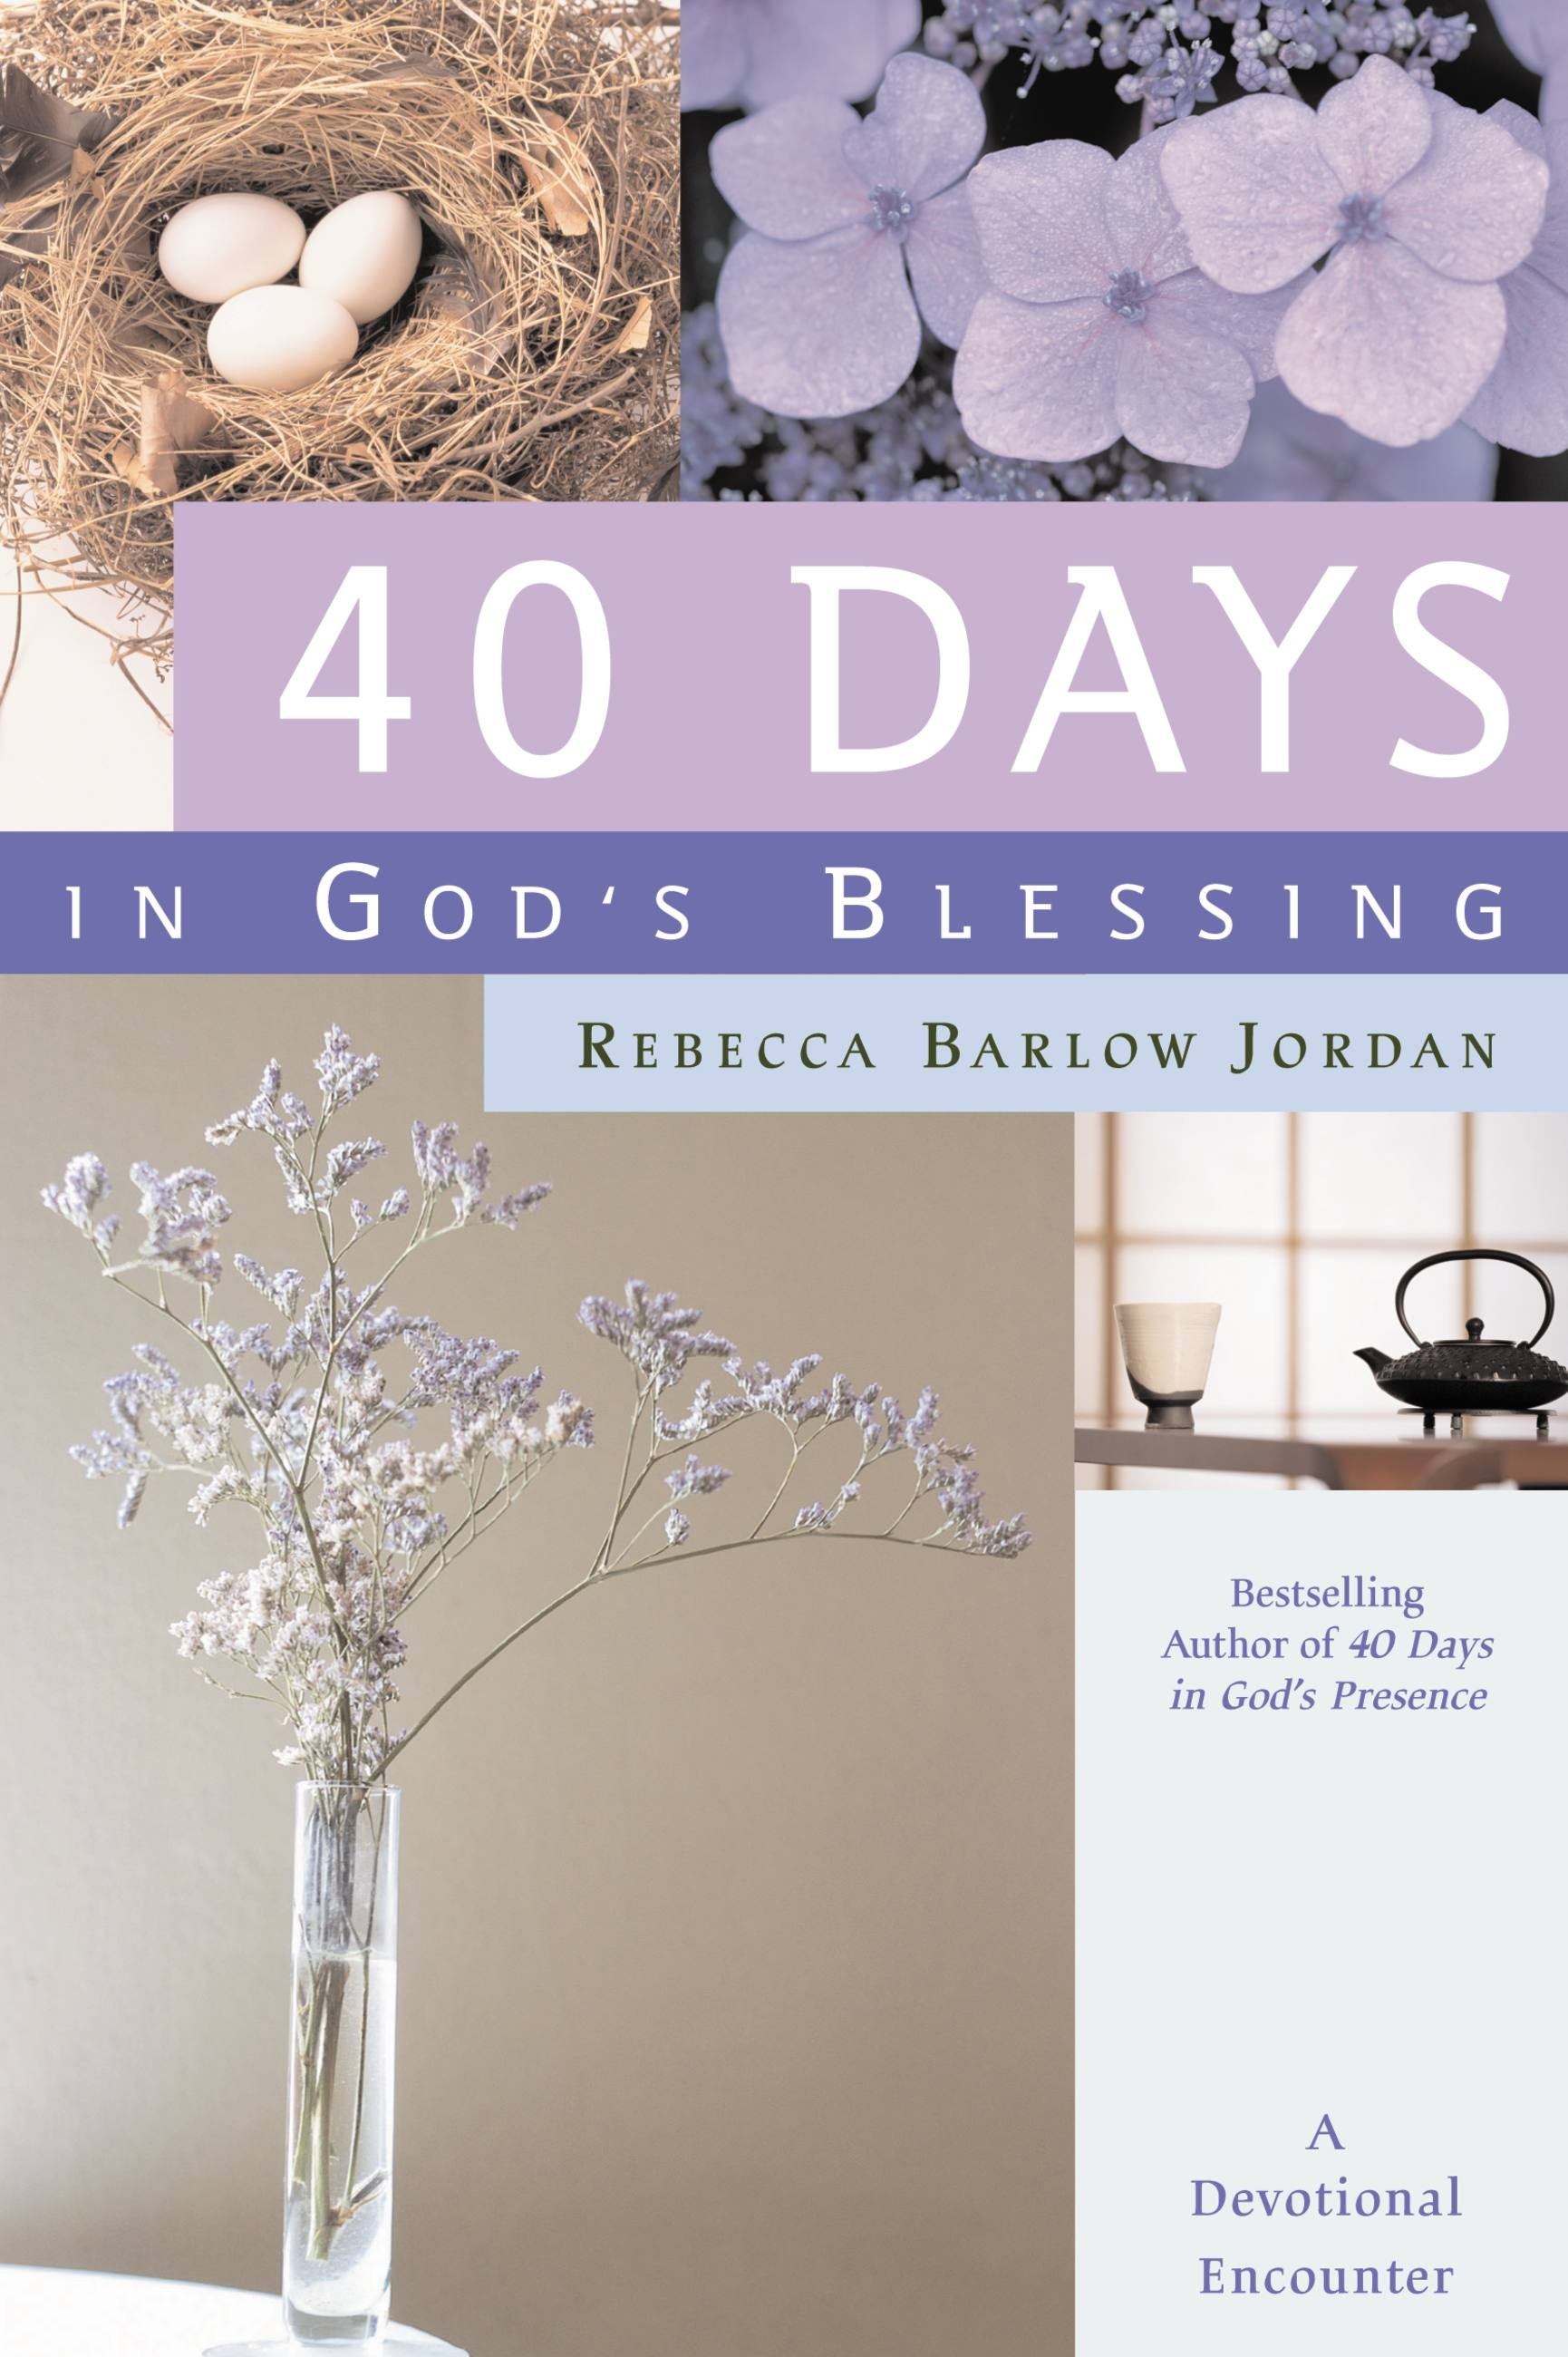 40 Days in God's Blessing